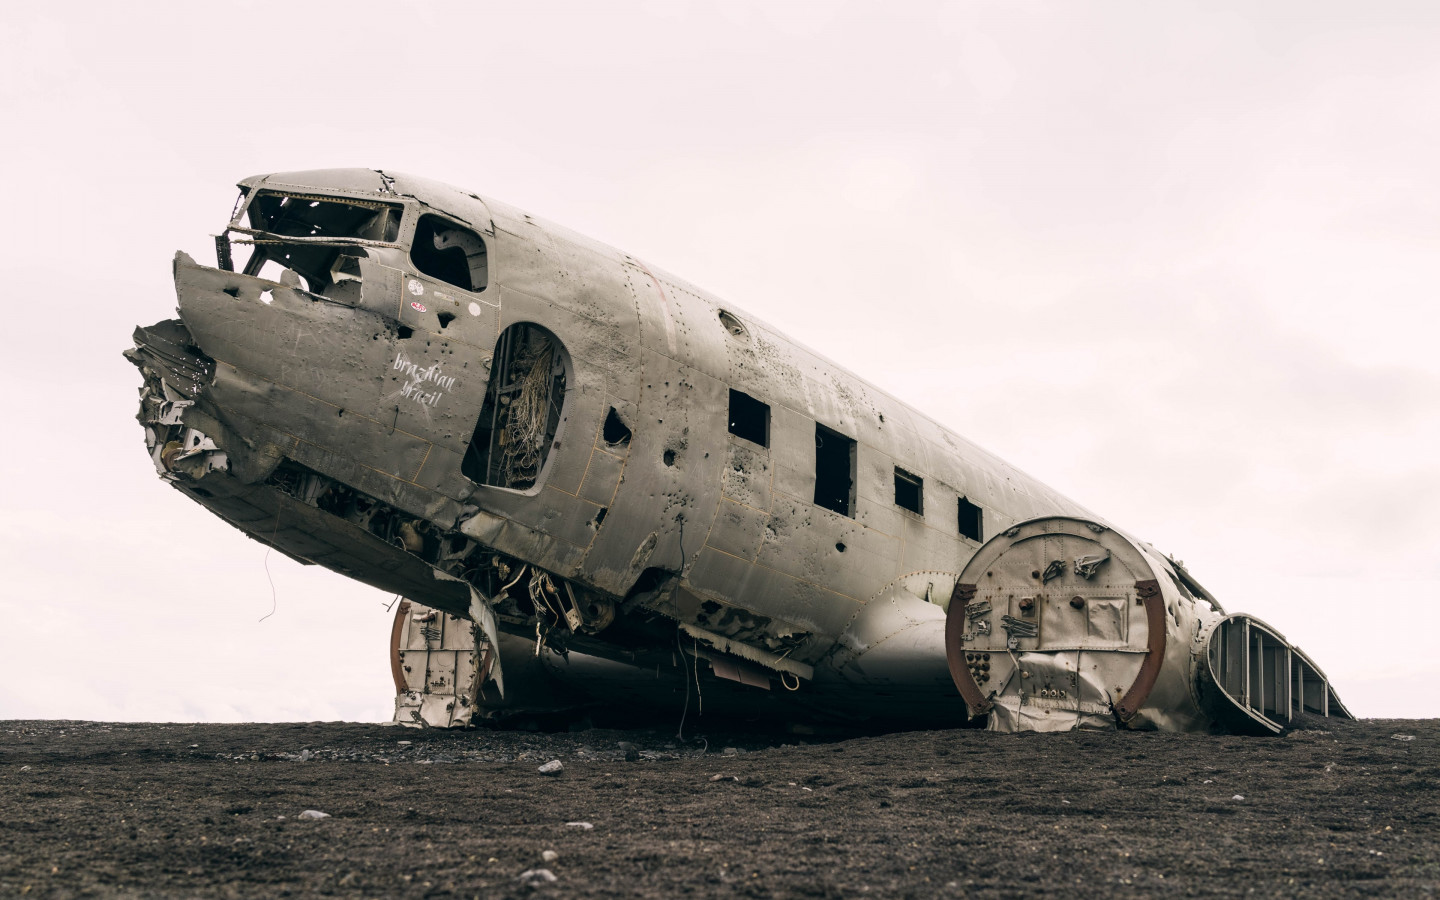 Wrecked airplane wallpaper 1440x900